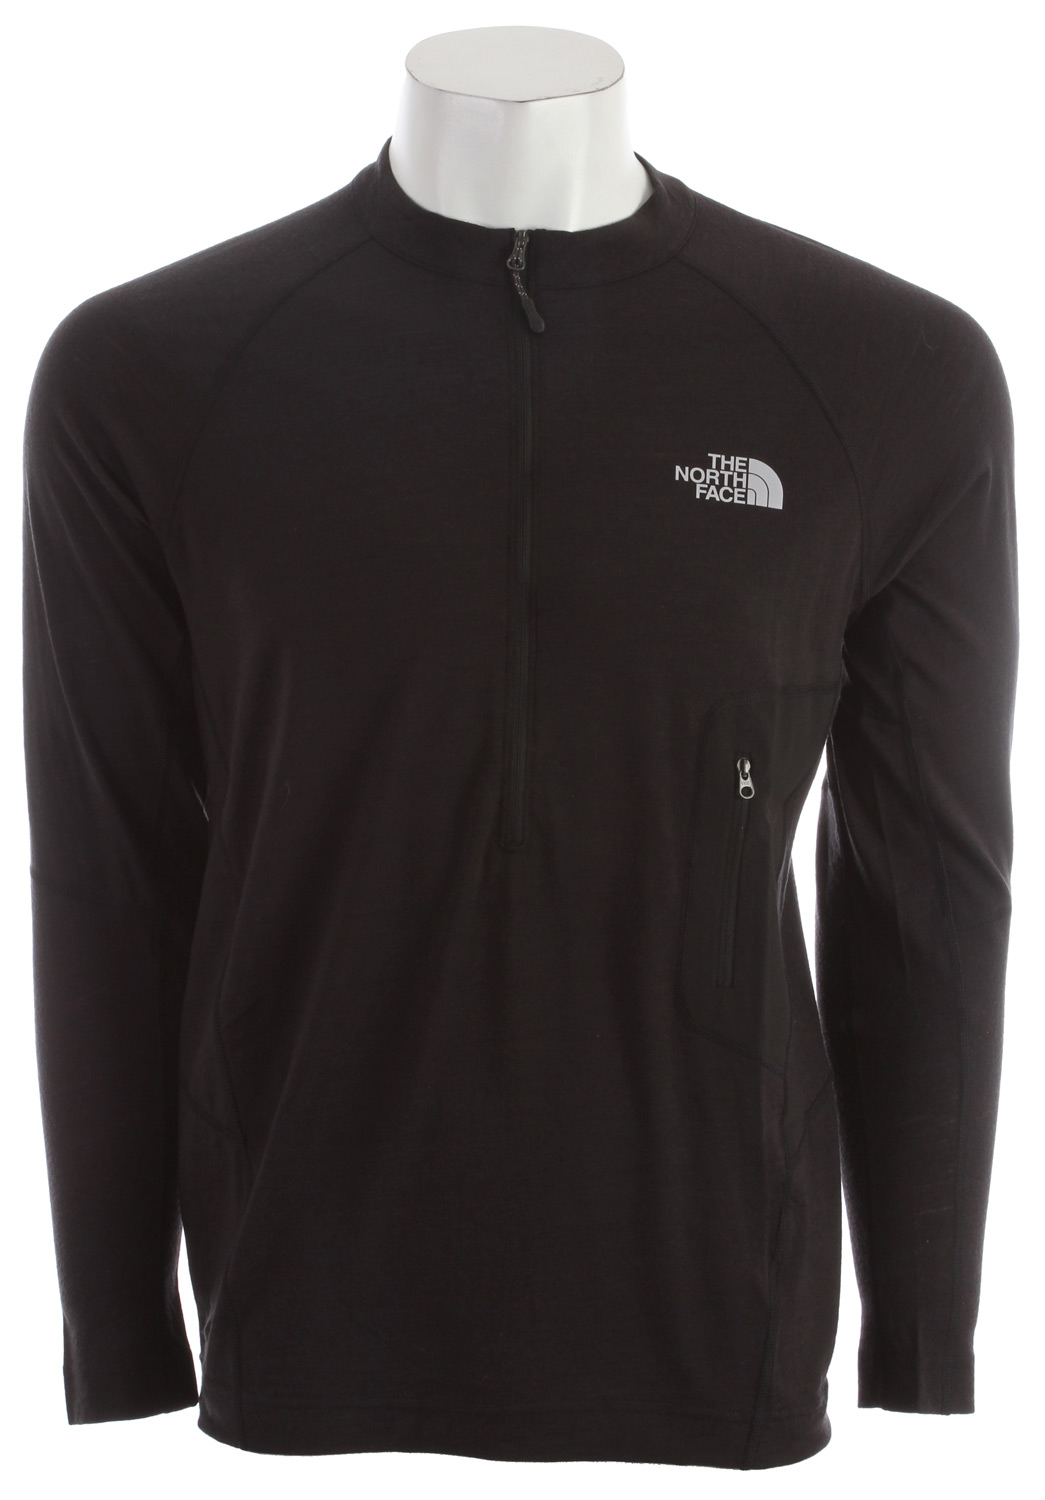 "A technical, next-to-skin layer with the comfort range, inherent odor management and durability of wool. Key Features of the The North Face Litho L/S 1/4 Zip Baselayer Top: Athletically cut and patternmapped with vertical activity in mind Intuitive, easy-access, zippered pocket secures essentials Avg weight: 6.2 oz (175 g) Center back: 27"" Fabric: 145 g/m2 19.0 micron 100% merino wool jersey - $68.95"